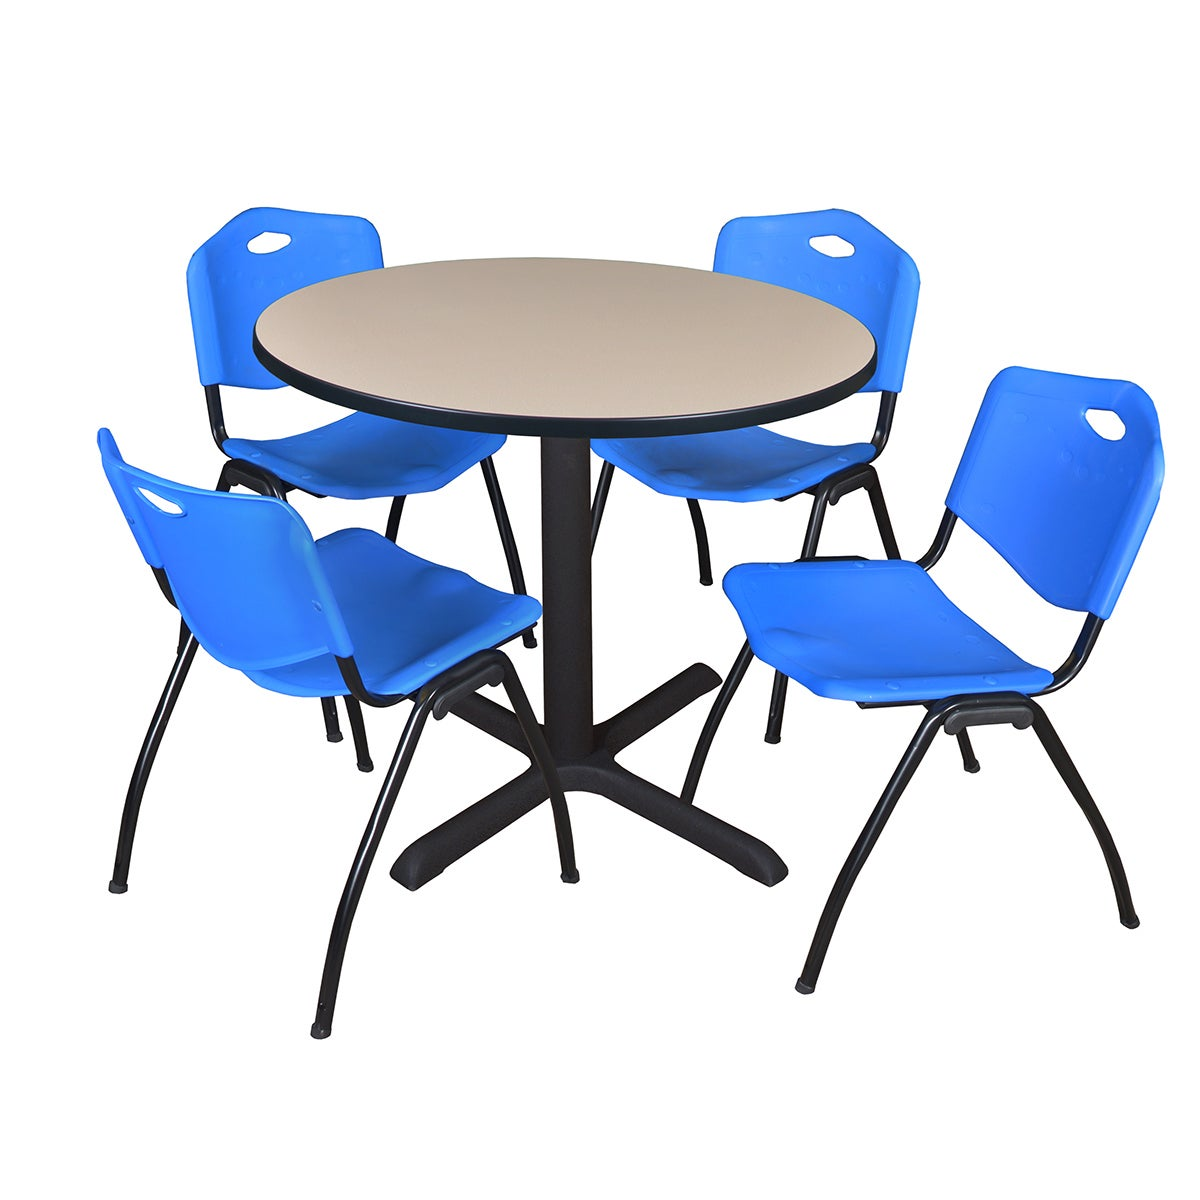 Details About Round 36 Inch Table And 4 M Stackable Blue Chairs